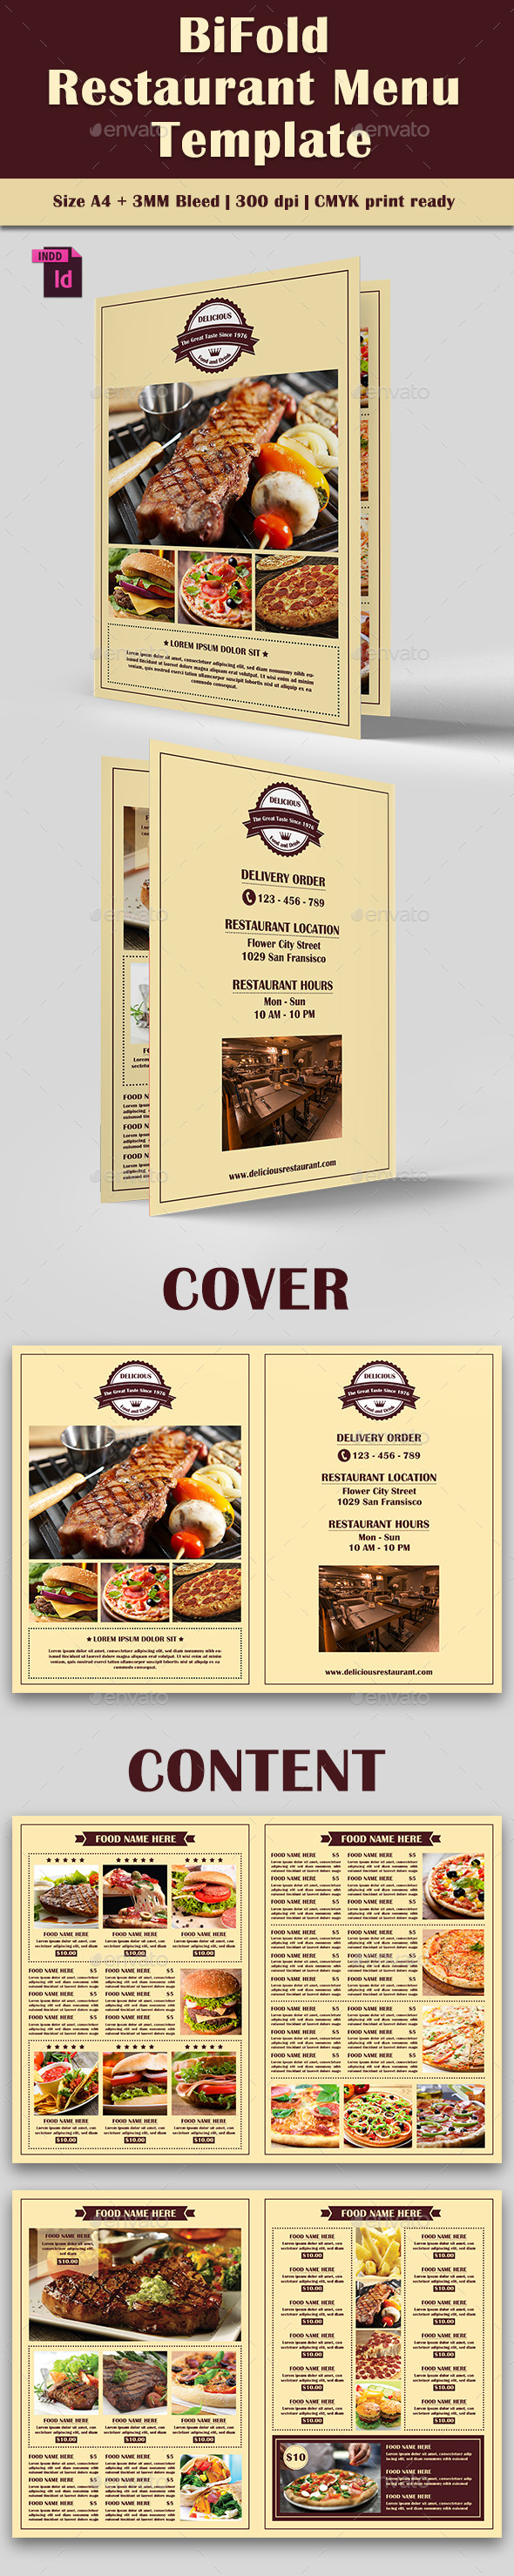 GraphicRiver BiFold Restaurant Menu Vol 7 11651639